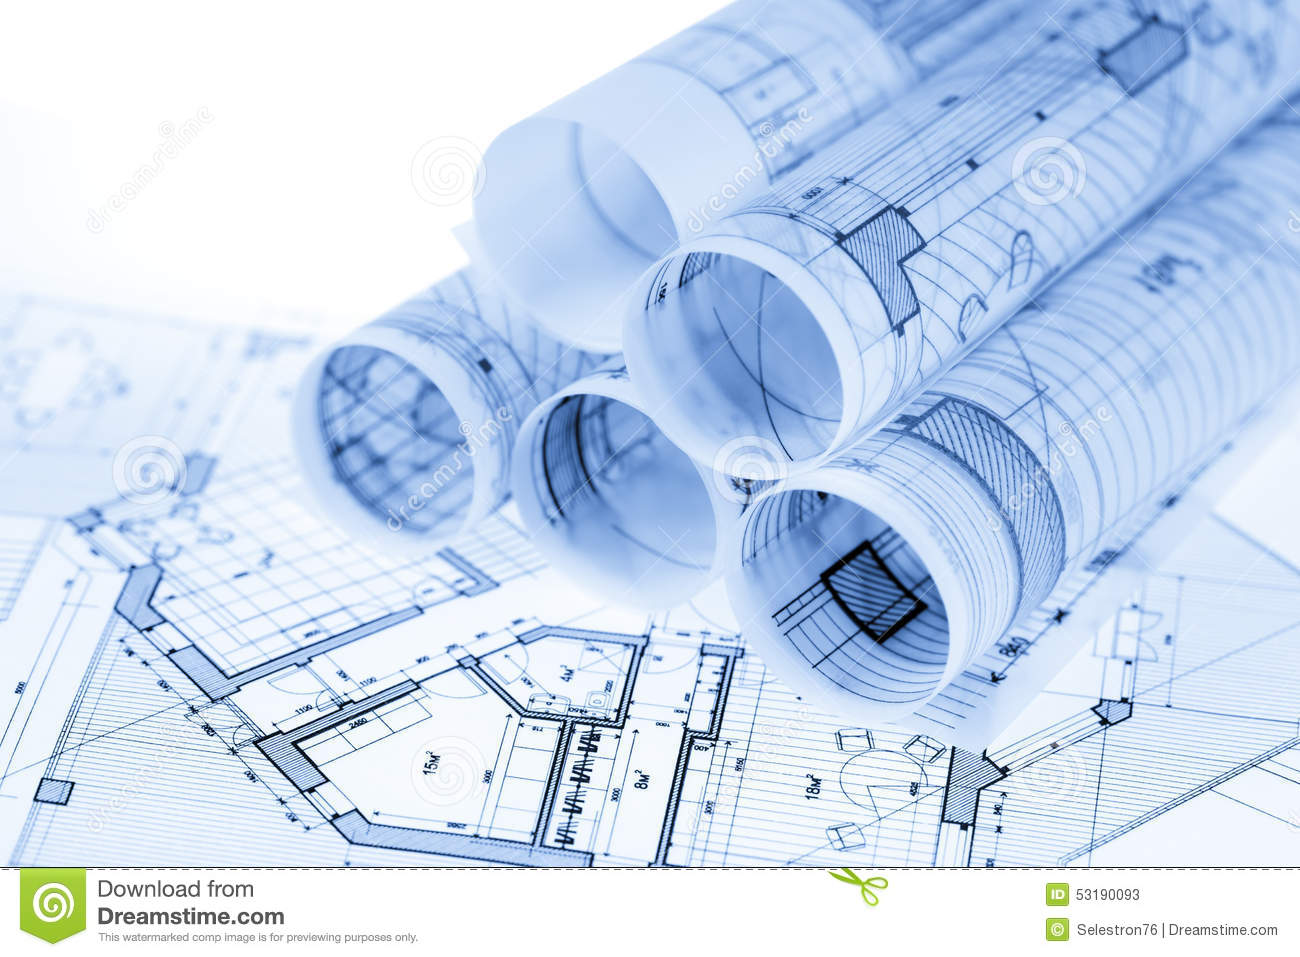 Rolls of architecture blueprints stock illustration for Architecture blueprints